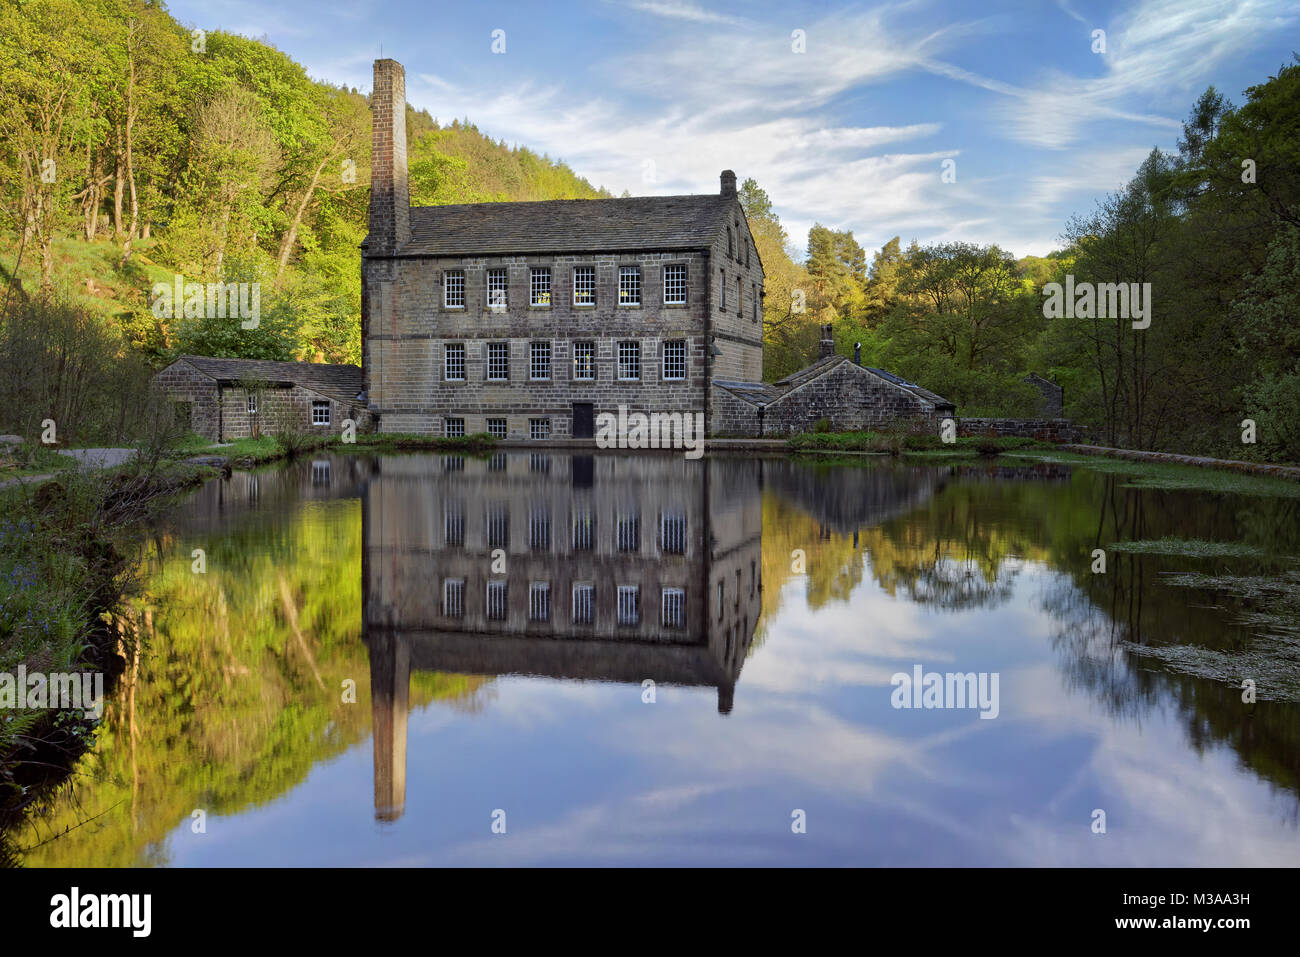 UK,West Yorkshire,Hebden Bridge,Hardcastle Crags,Gibson Mill and Pond - Stock Image